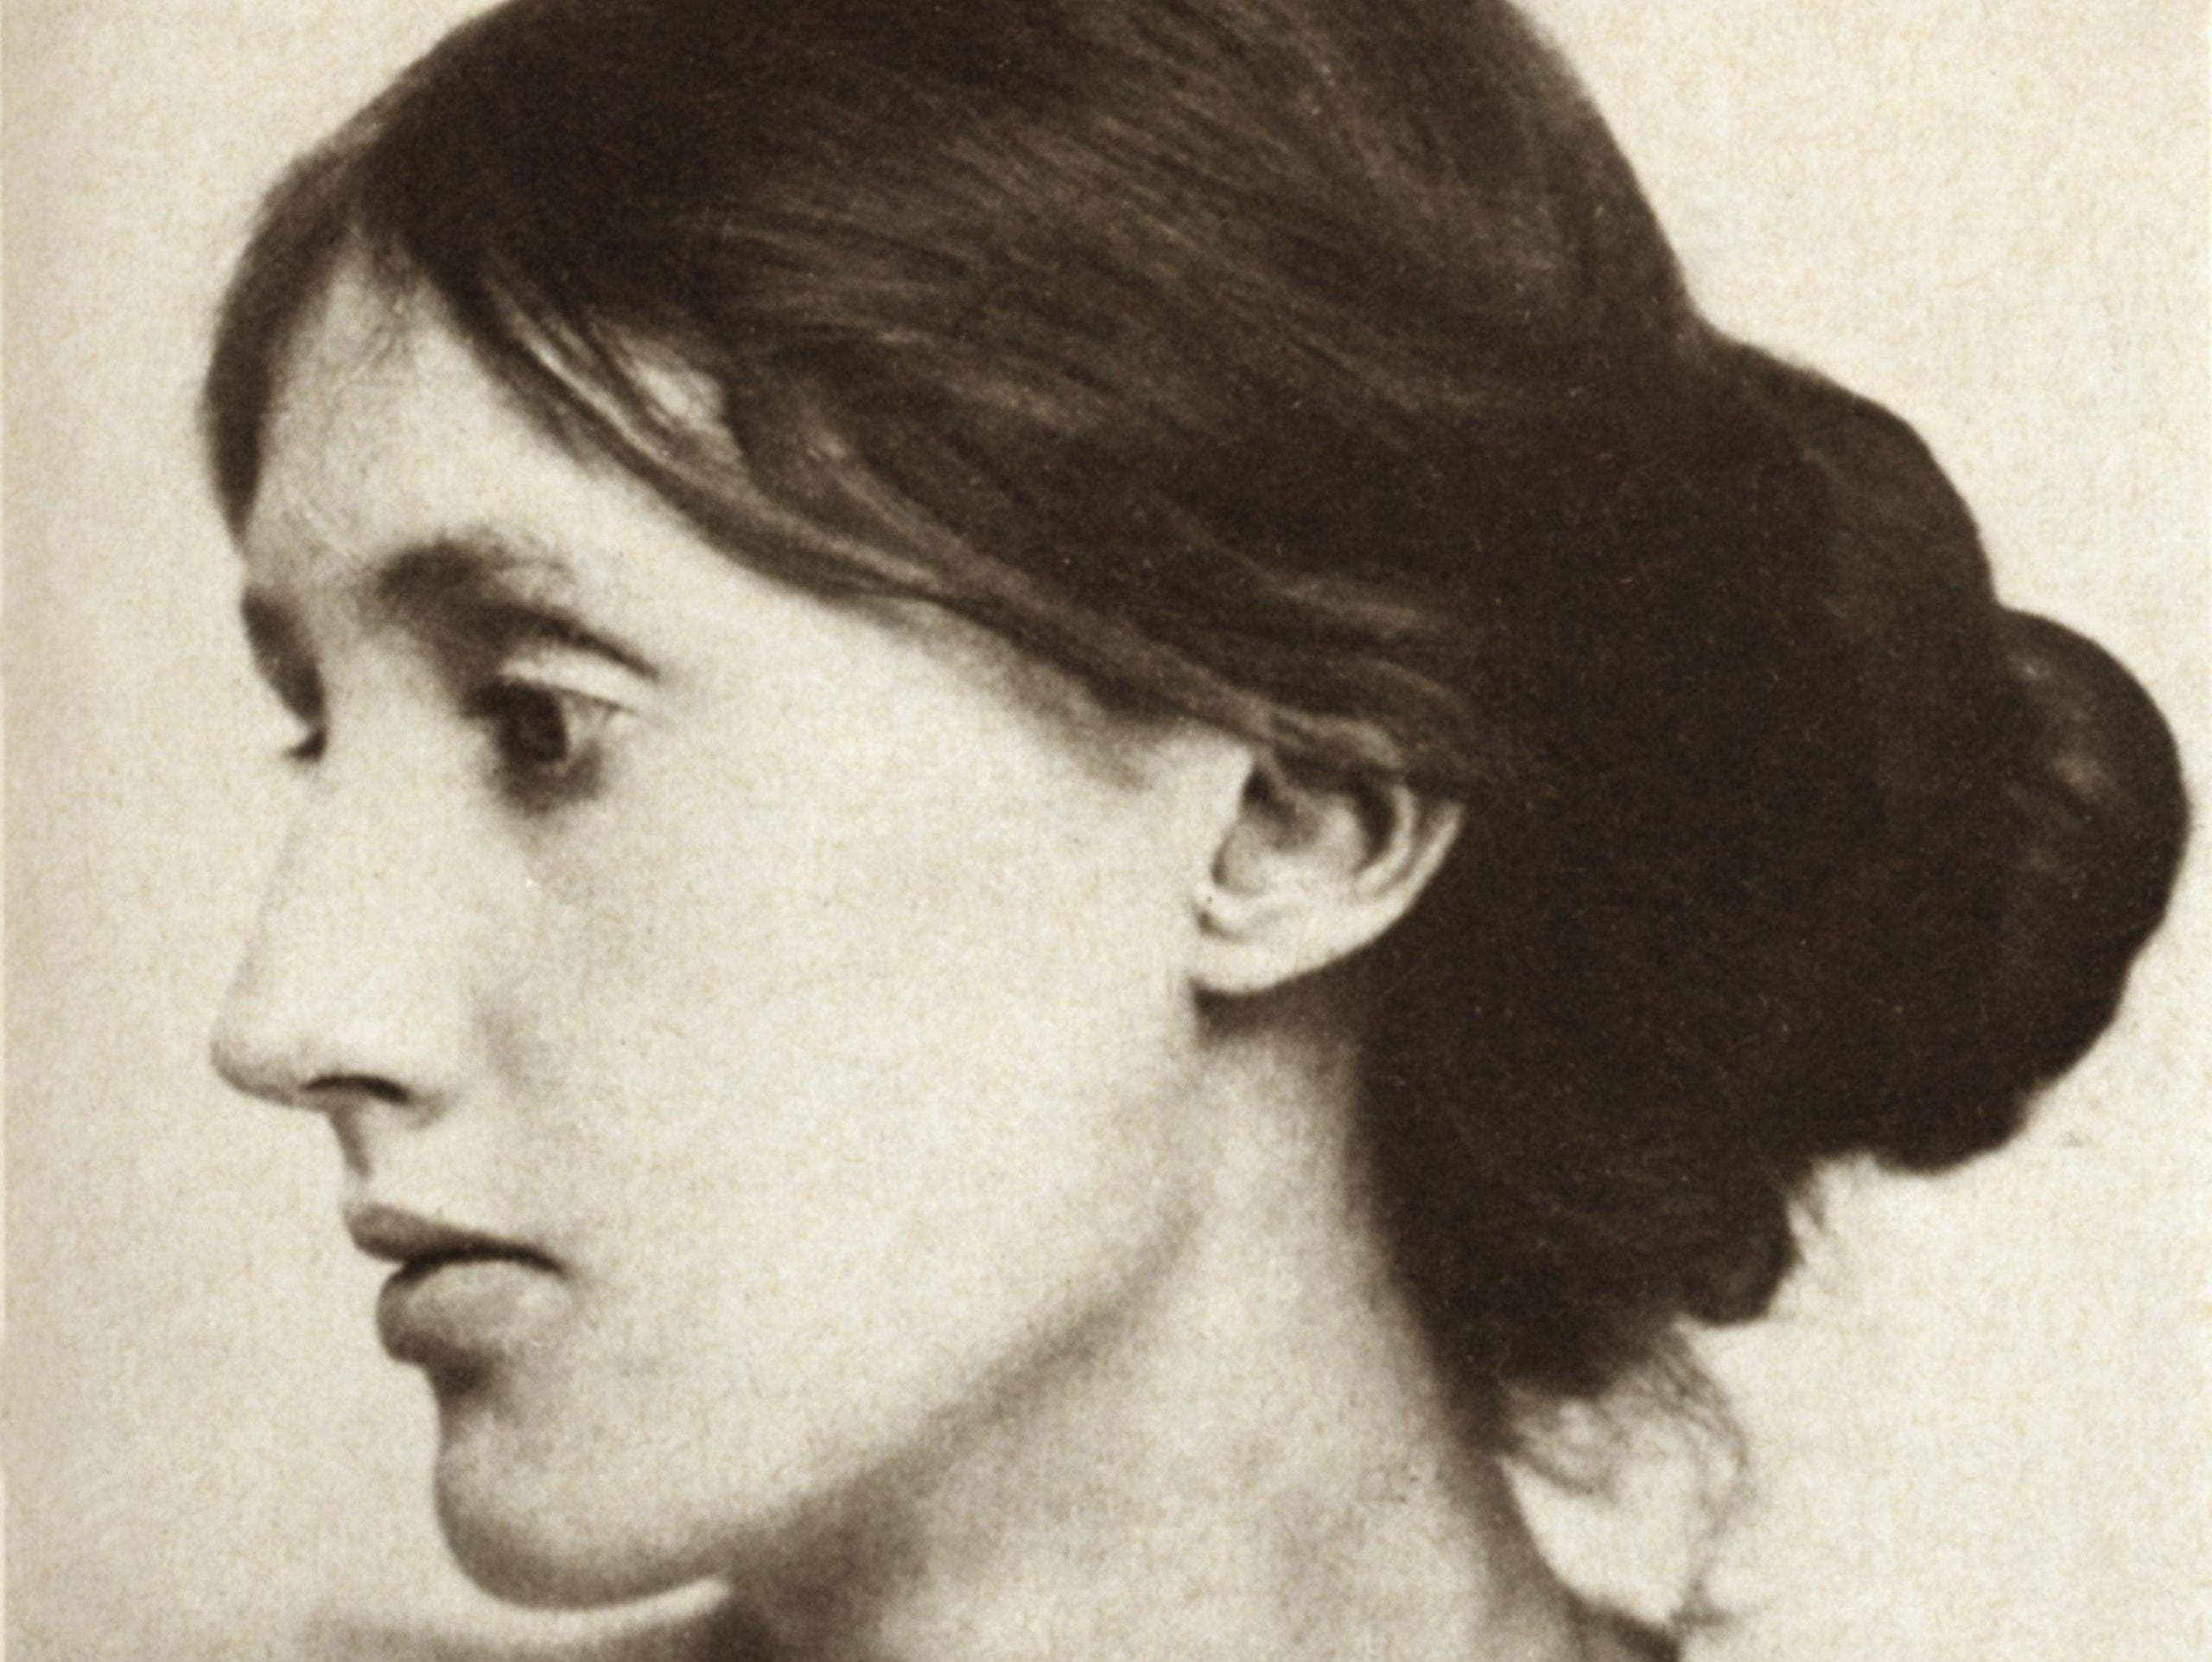 Shape shifter: The joyous transgressions of Virginia Woolf's Orlando